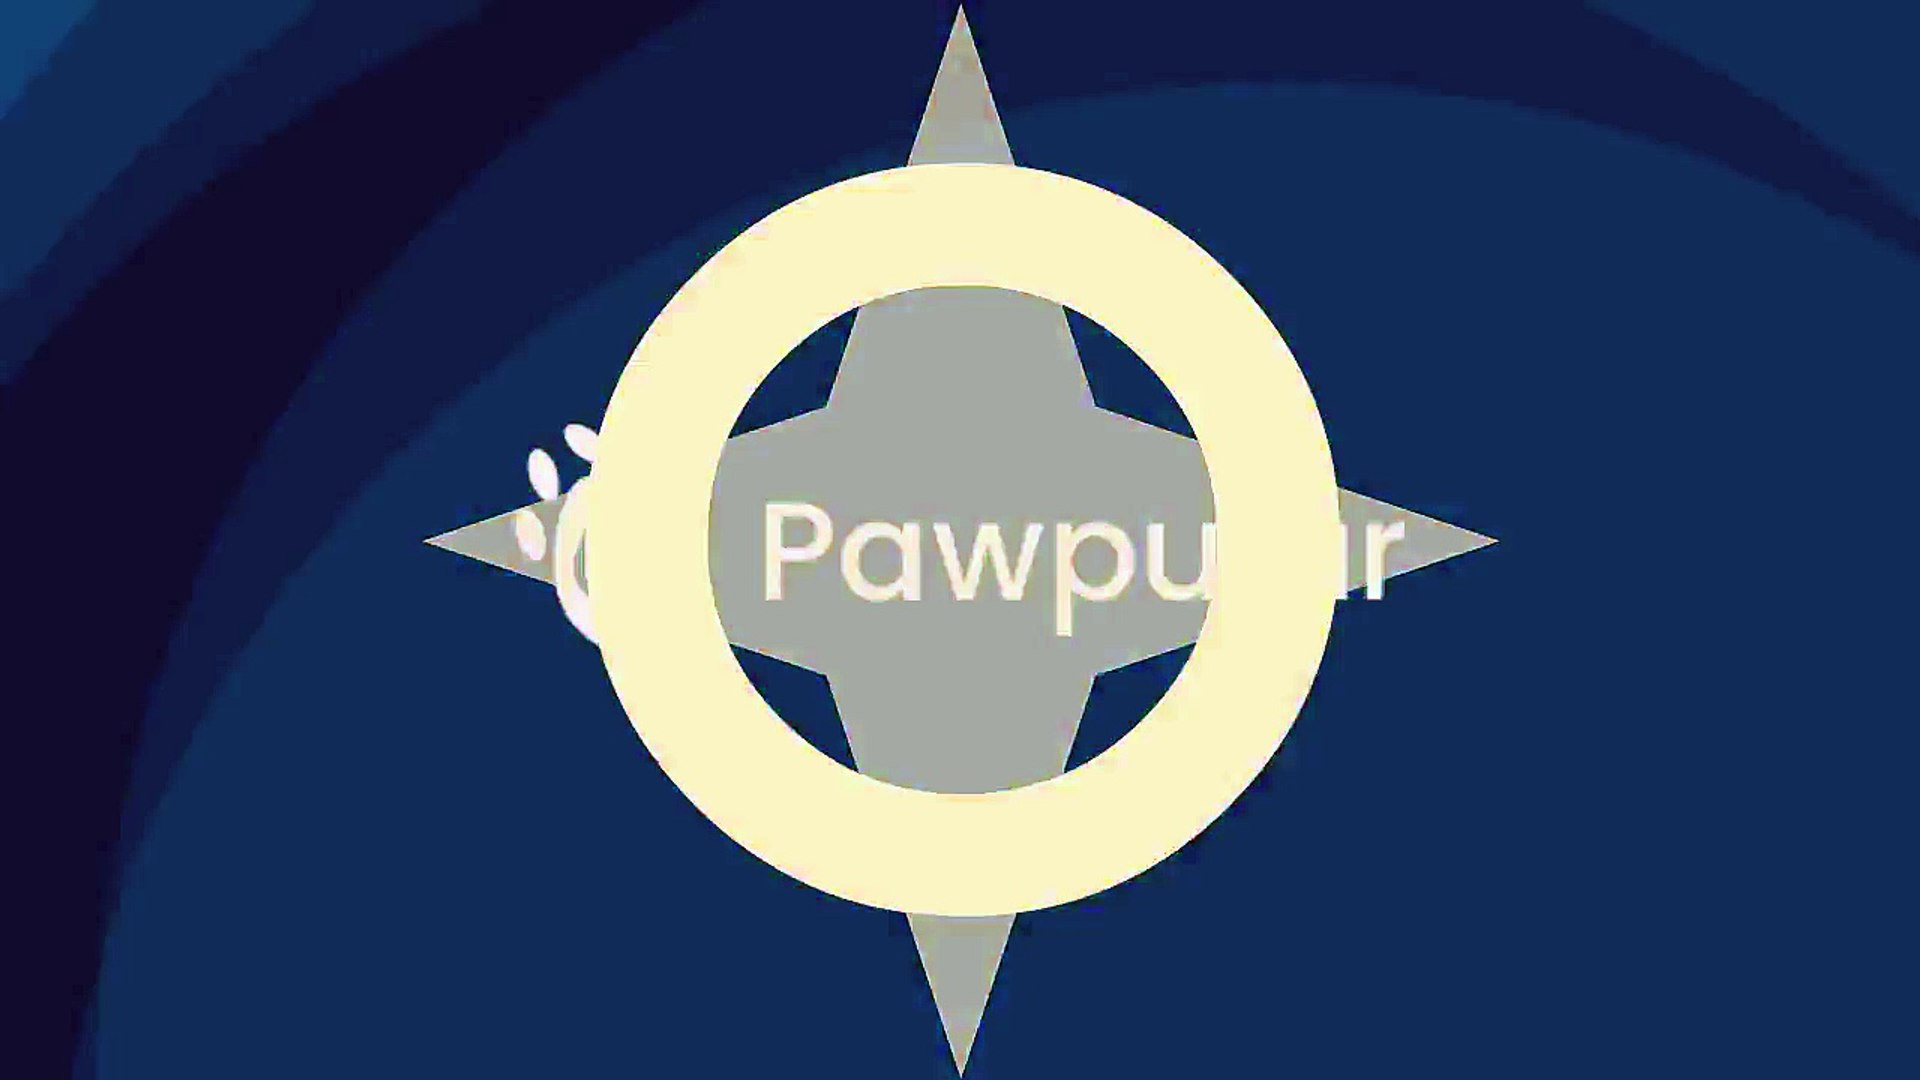 Pawpular - Pet Sitting,Dog Walking,Dog Boarding,Pet  Adoption,Pet Finder,Pet Social